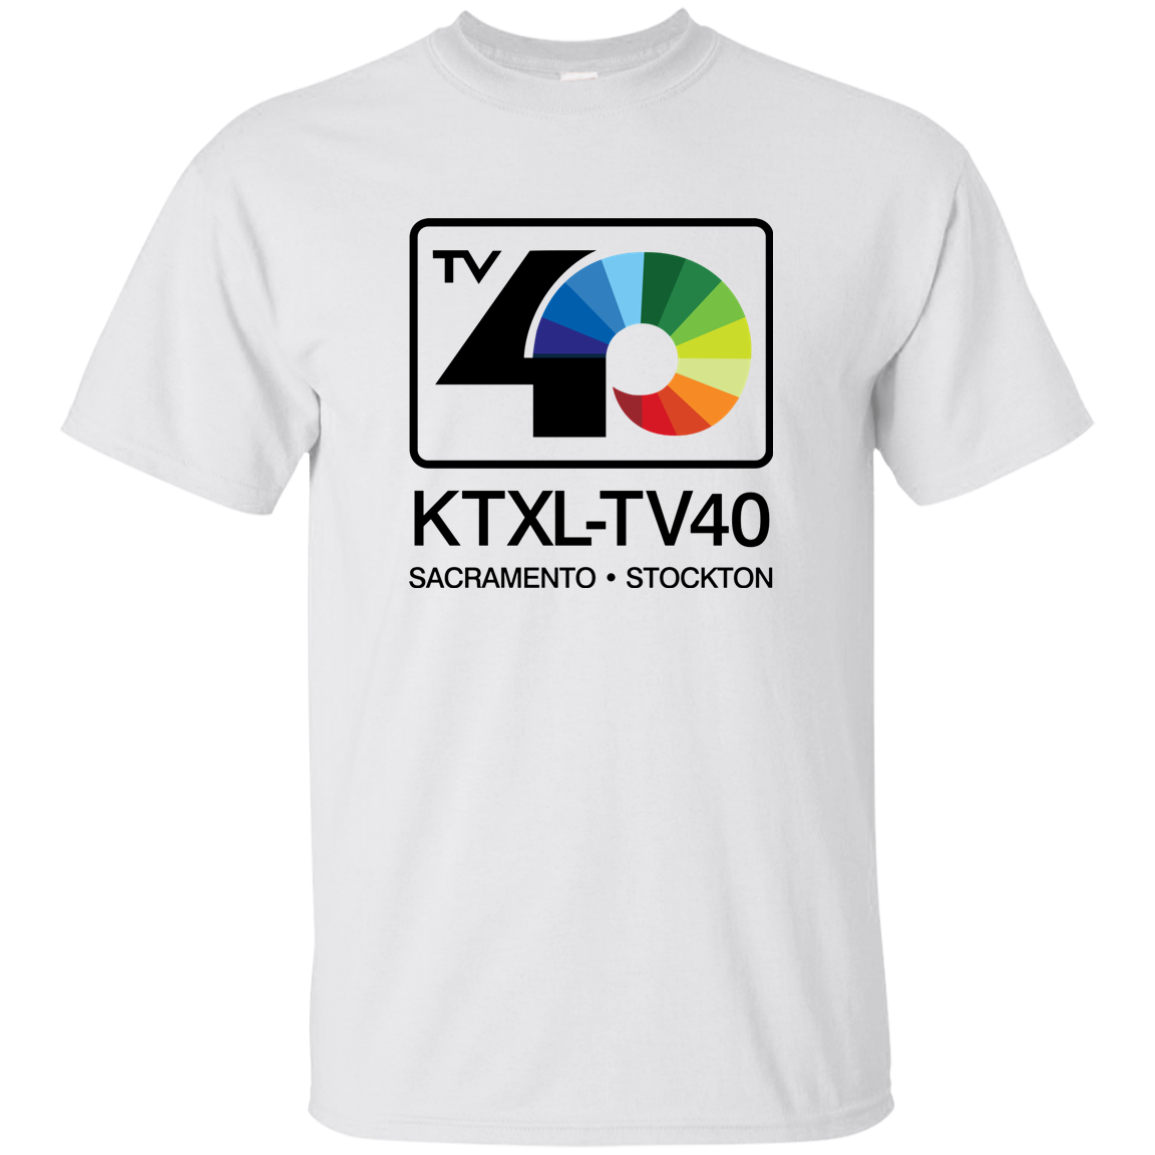 KTXL, TV, TELEVISION, CHANNEL 40, Stockton, Sacramento, California, Local Affili Cool Casual pride t shirt men Unisex New